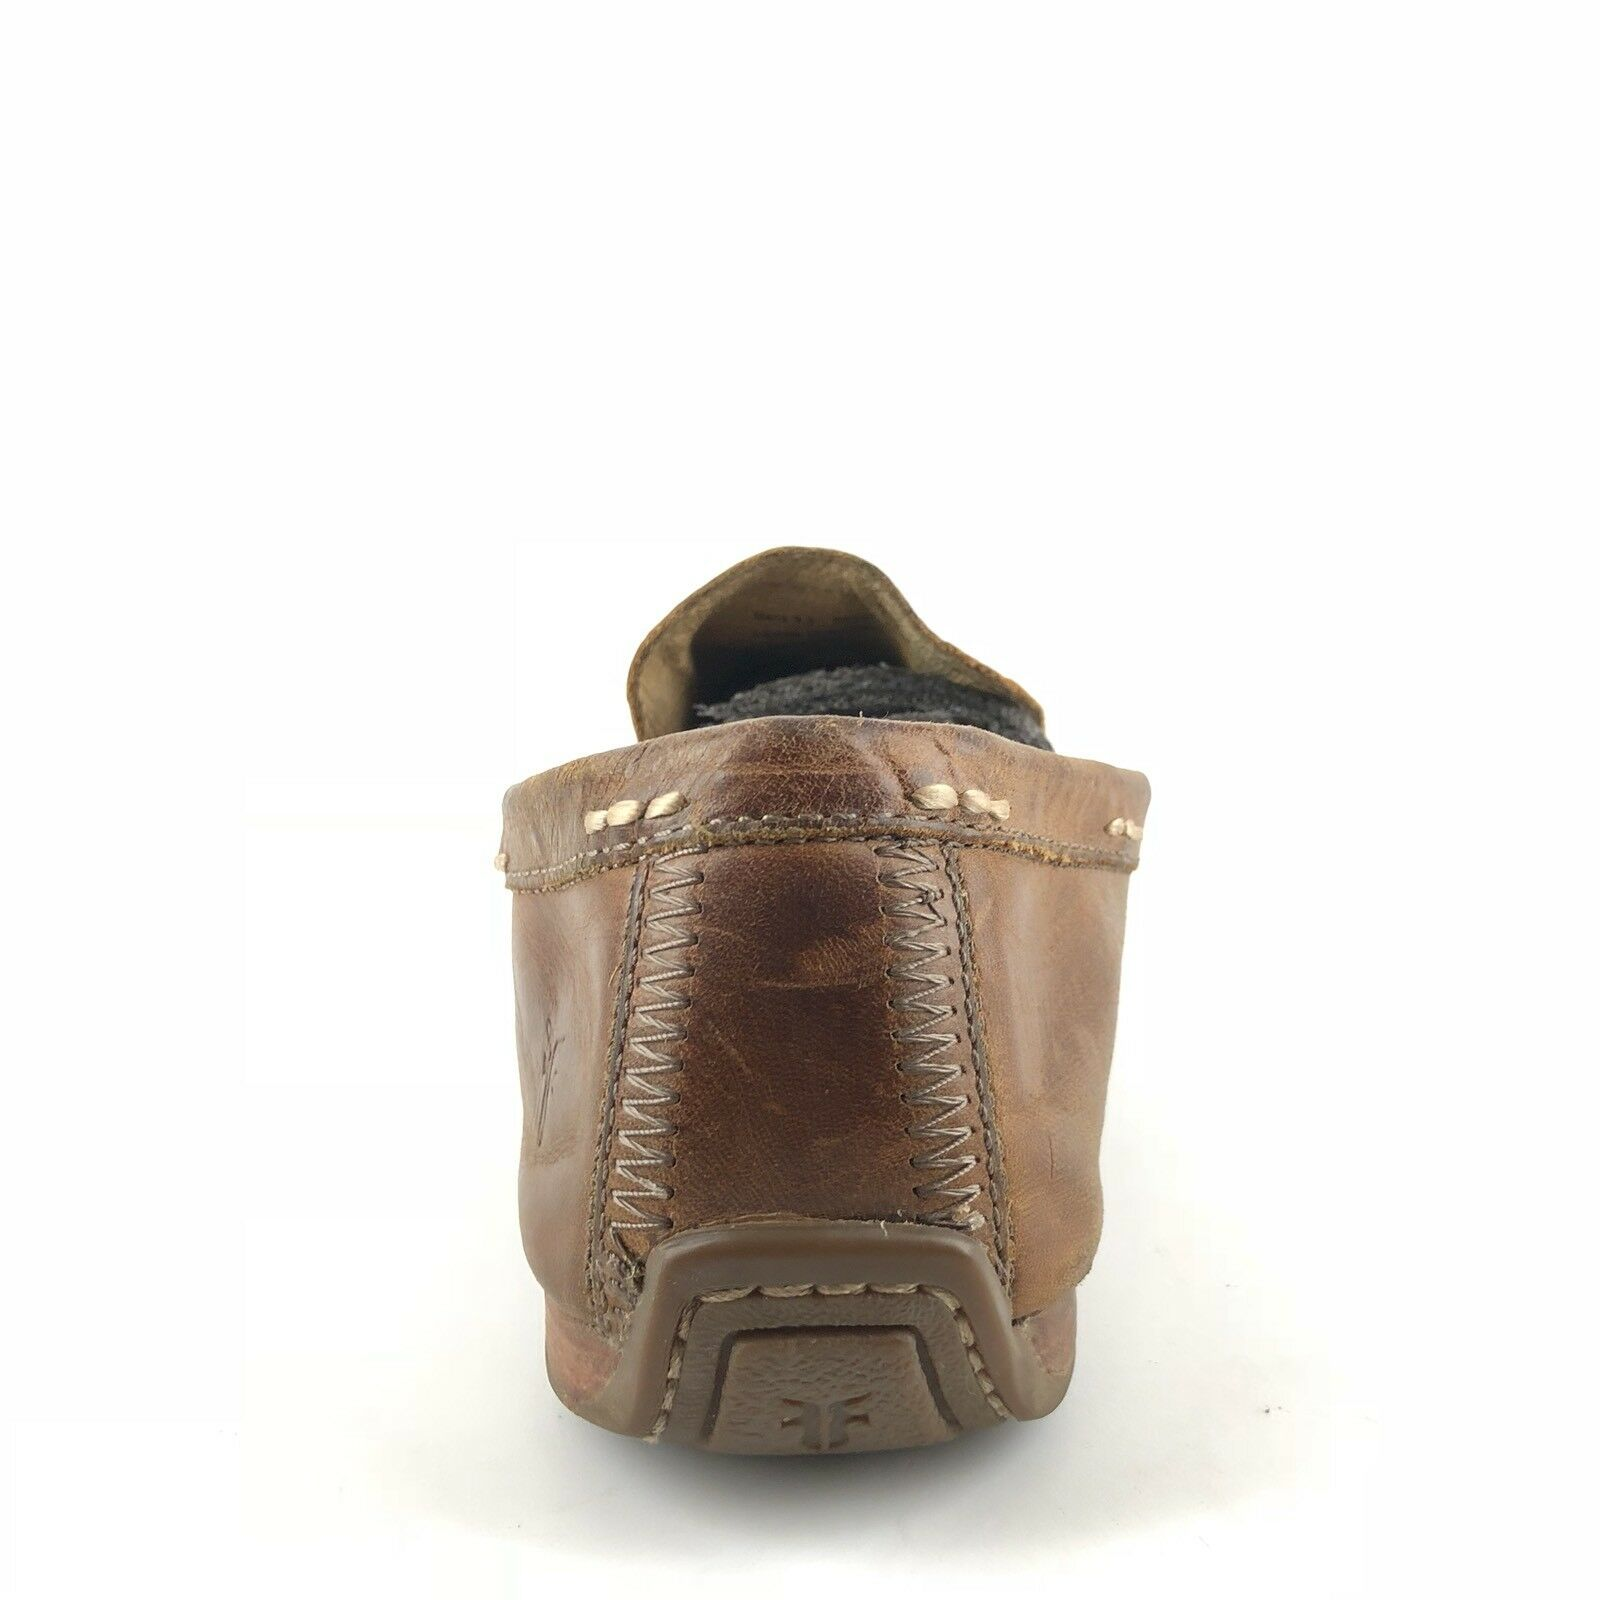 aa12b319215 ... Frye Lewis Venetian Brown Brown Brown Leather Loafers Driving Mocs Mens  Size 7.5 M 8a8a00 ...